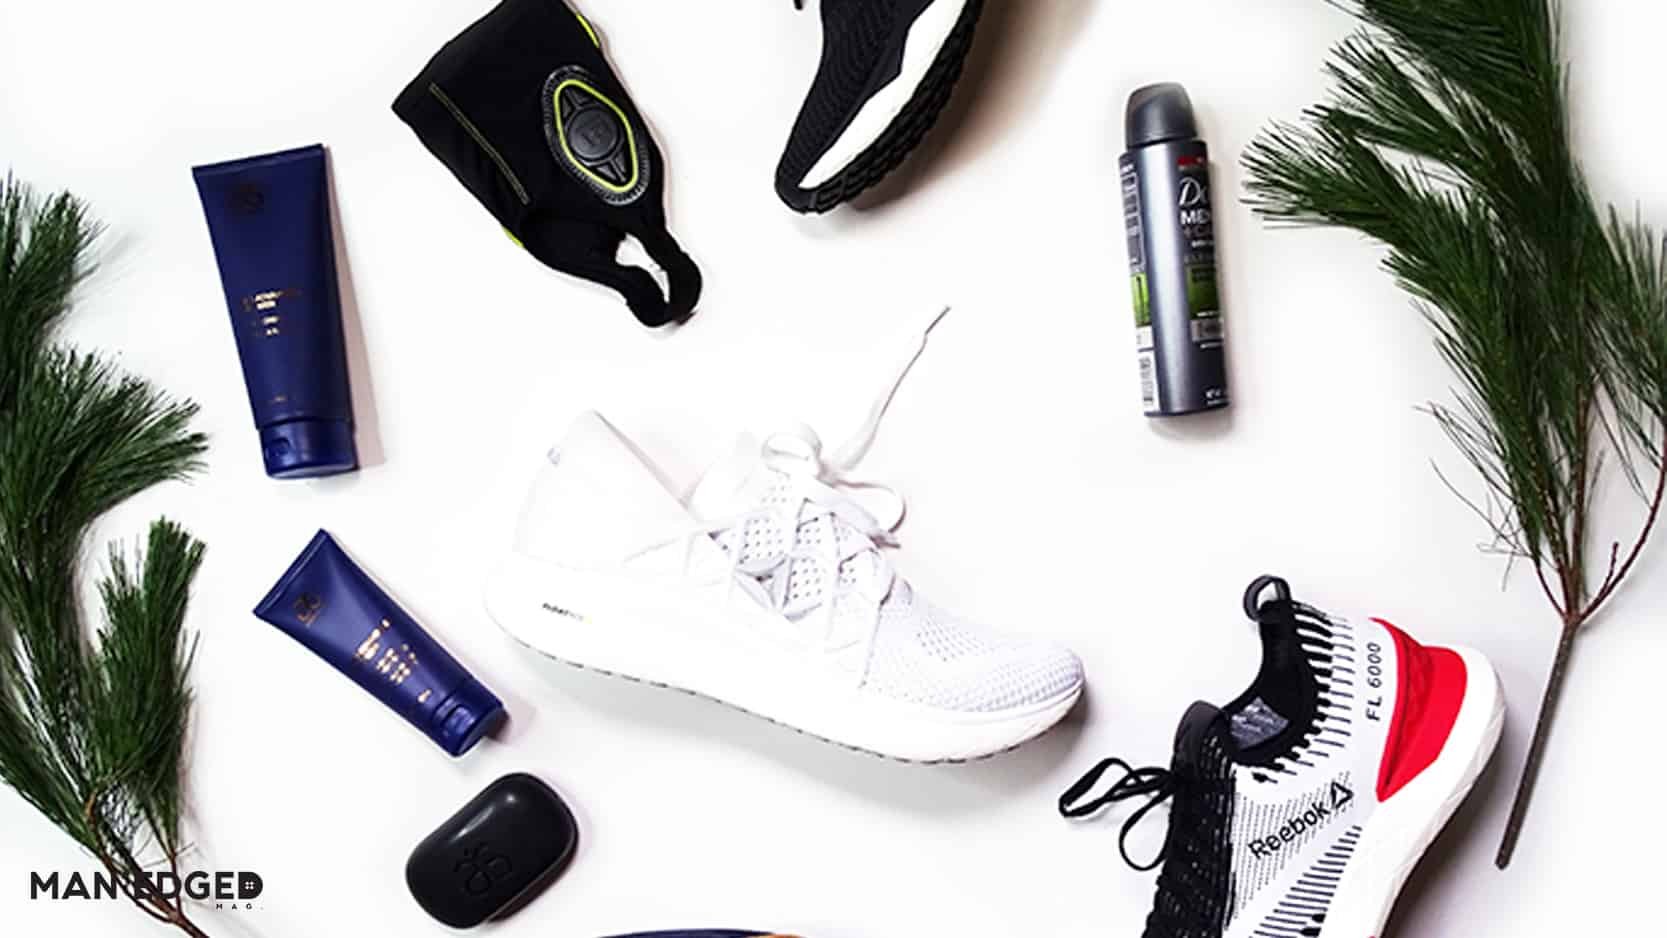 MAN'edged Mag's holiday gift ideas for the athletic man